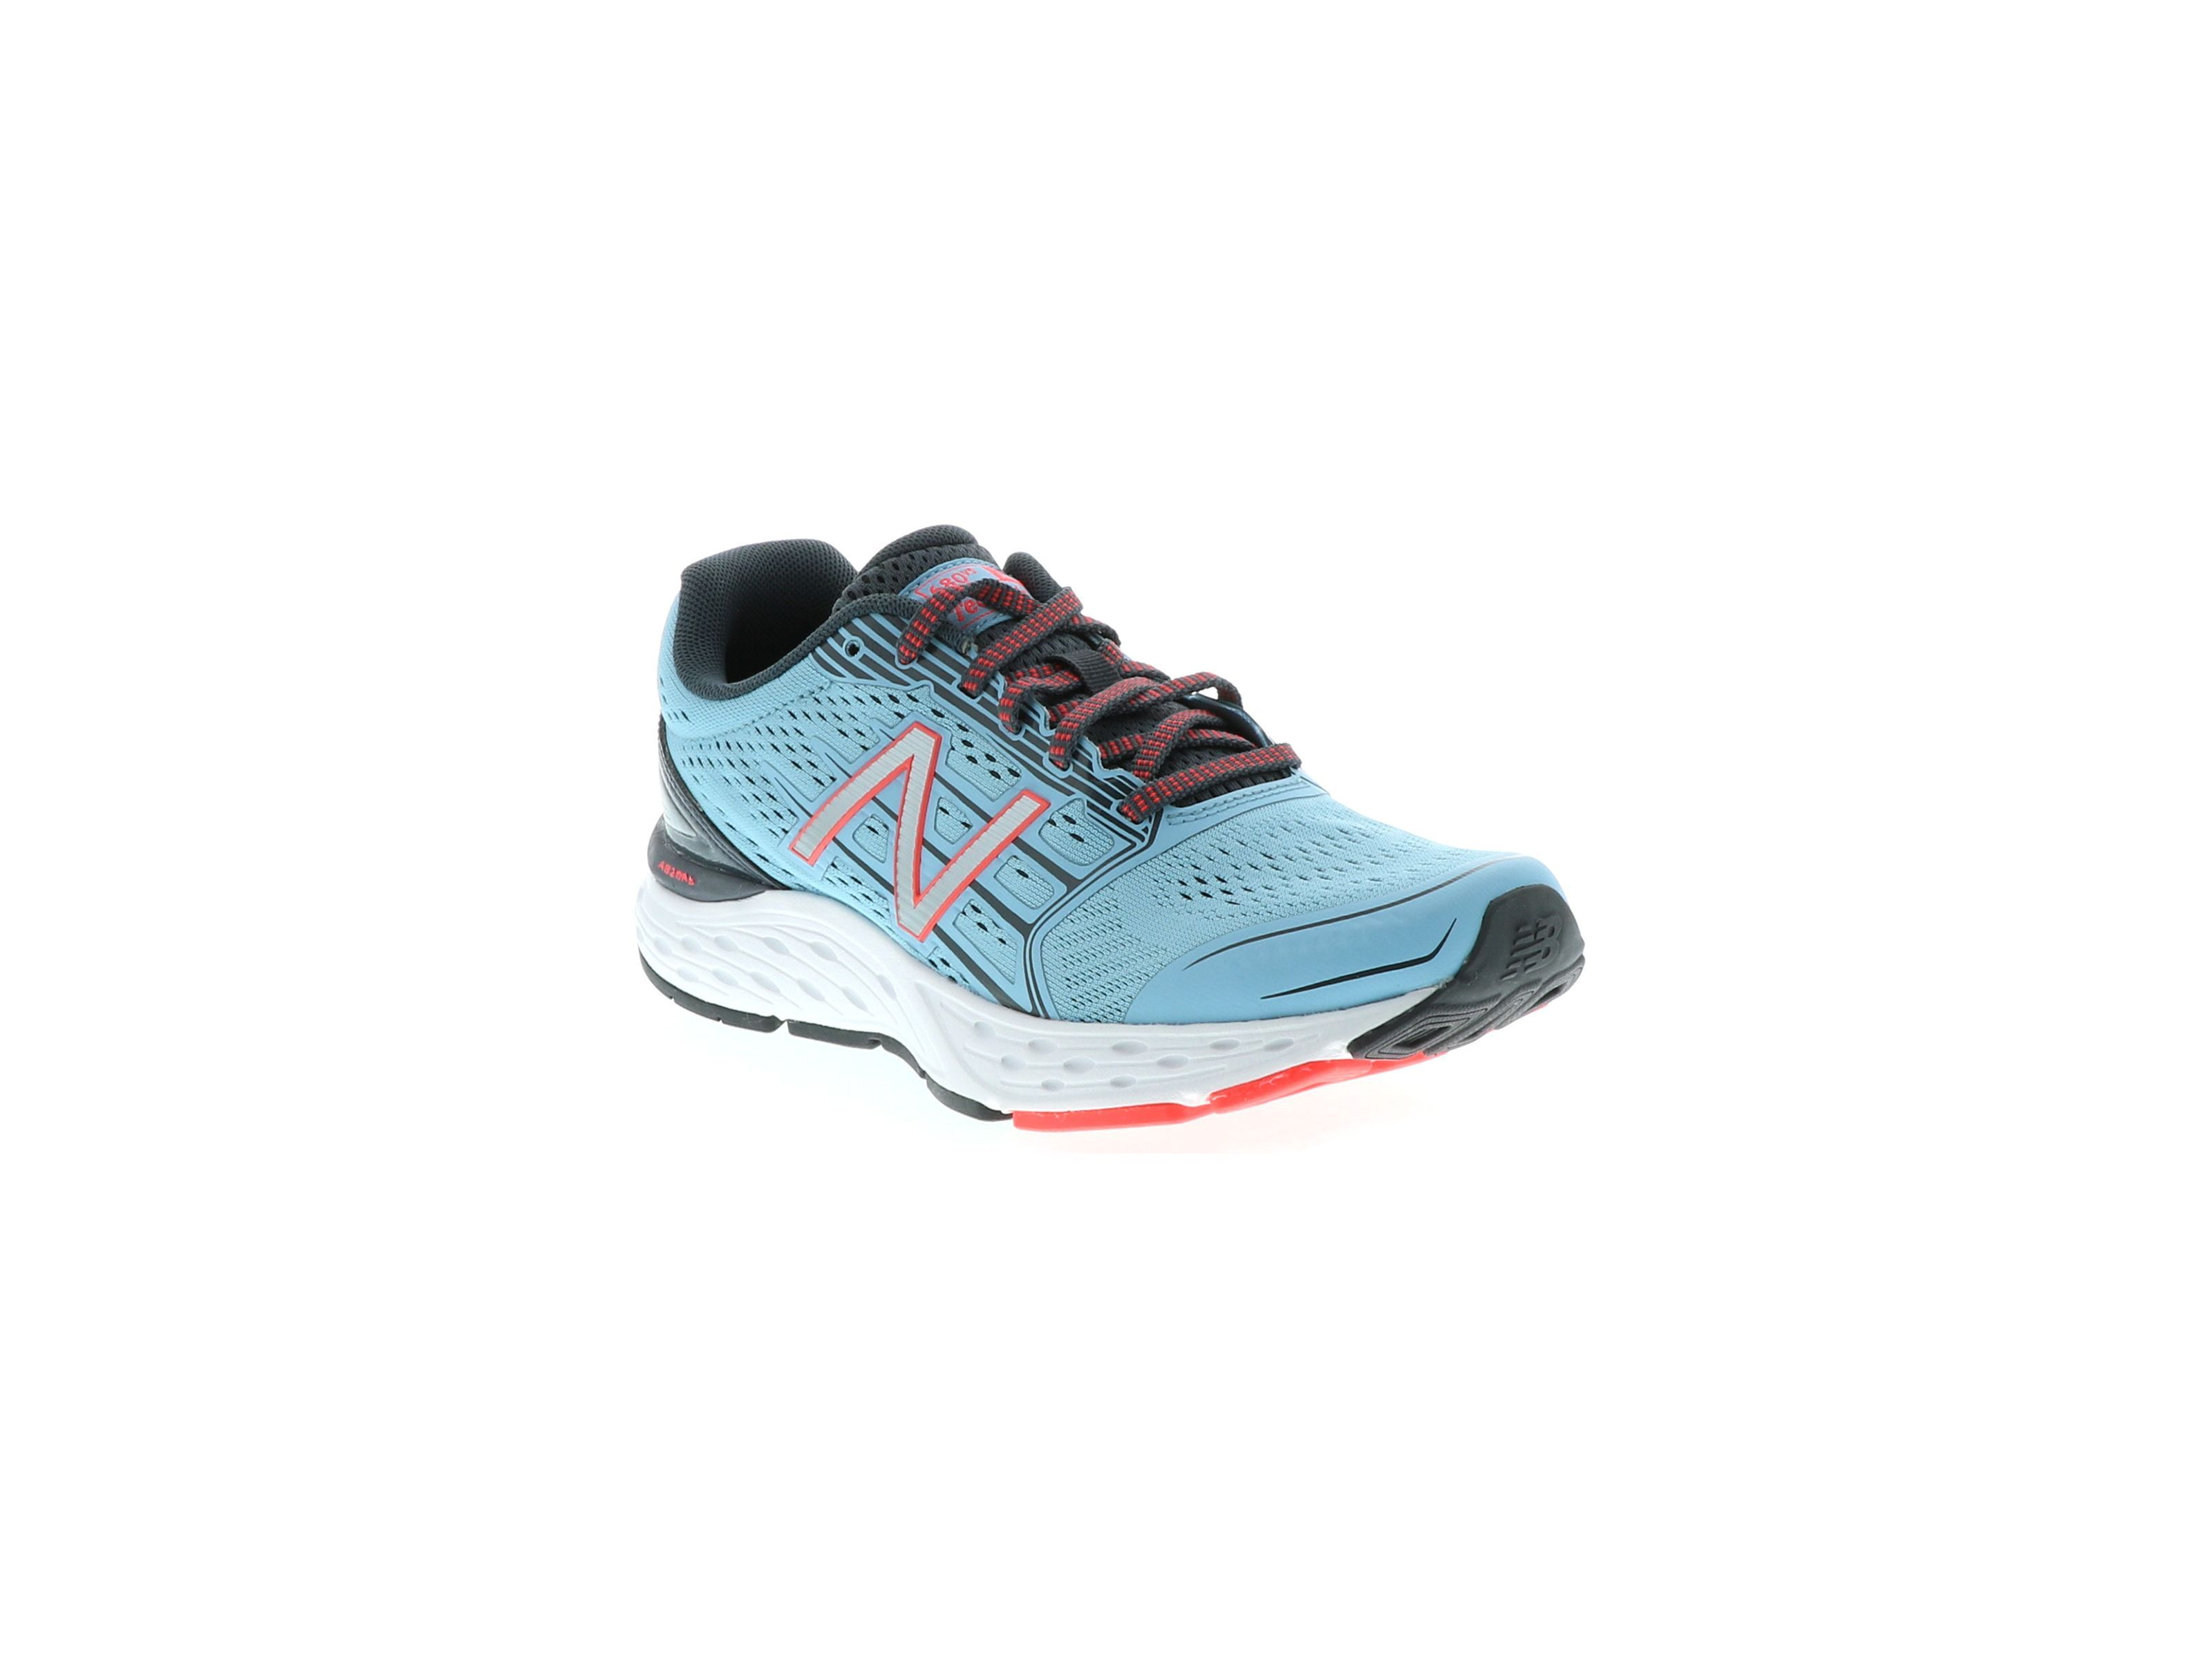 New Balance Womens W680lm5 Fabric Low Top Lace Up Running Sneaker by New Balance